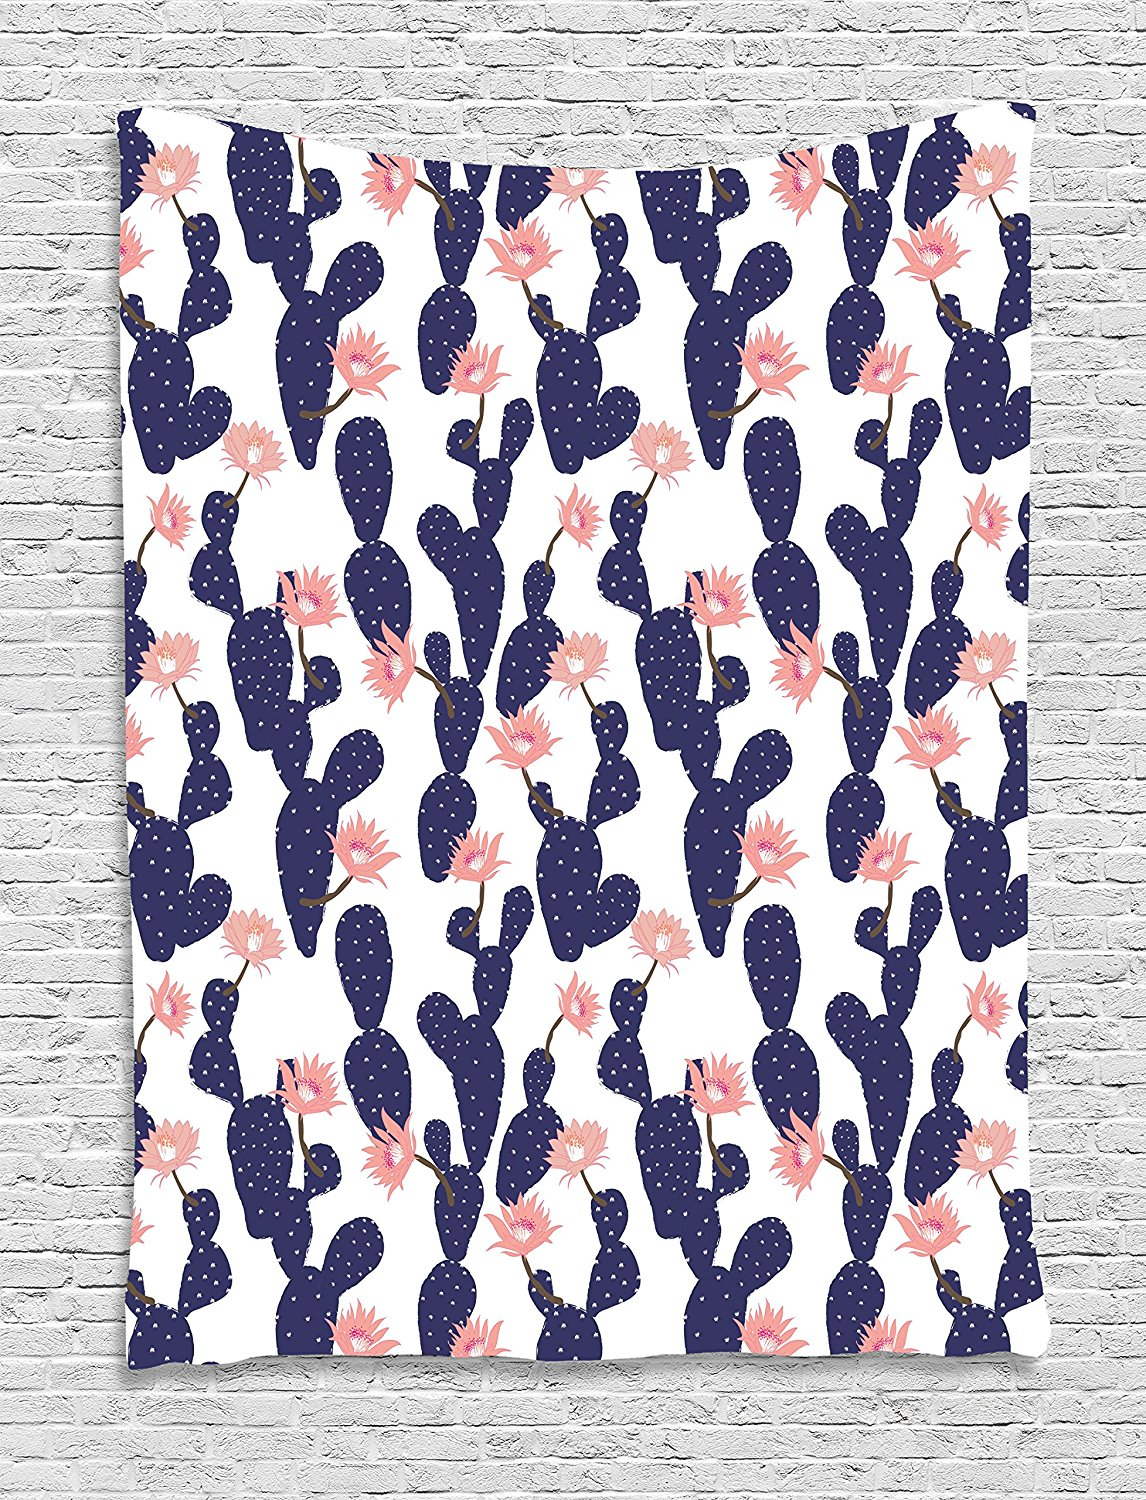 Navy And Blush Tapestry Cactus Tropical Garden Theme